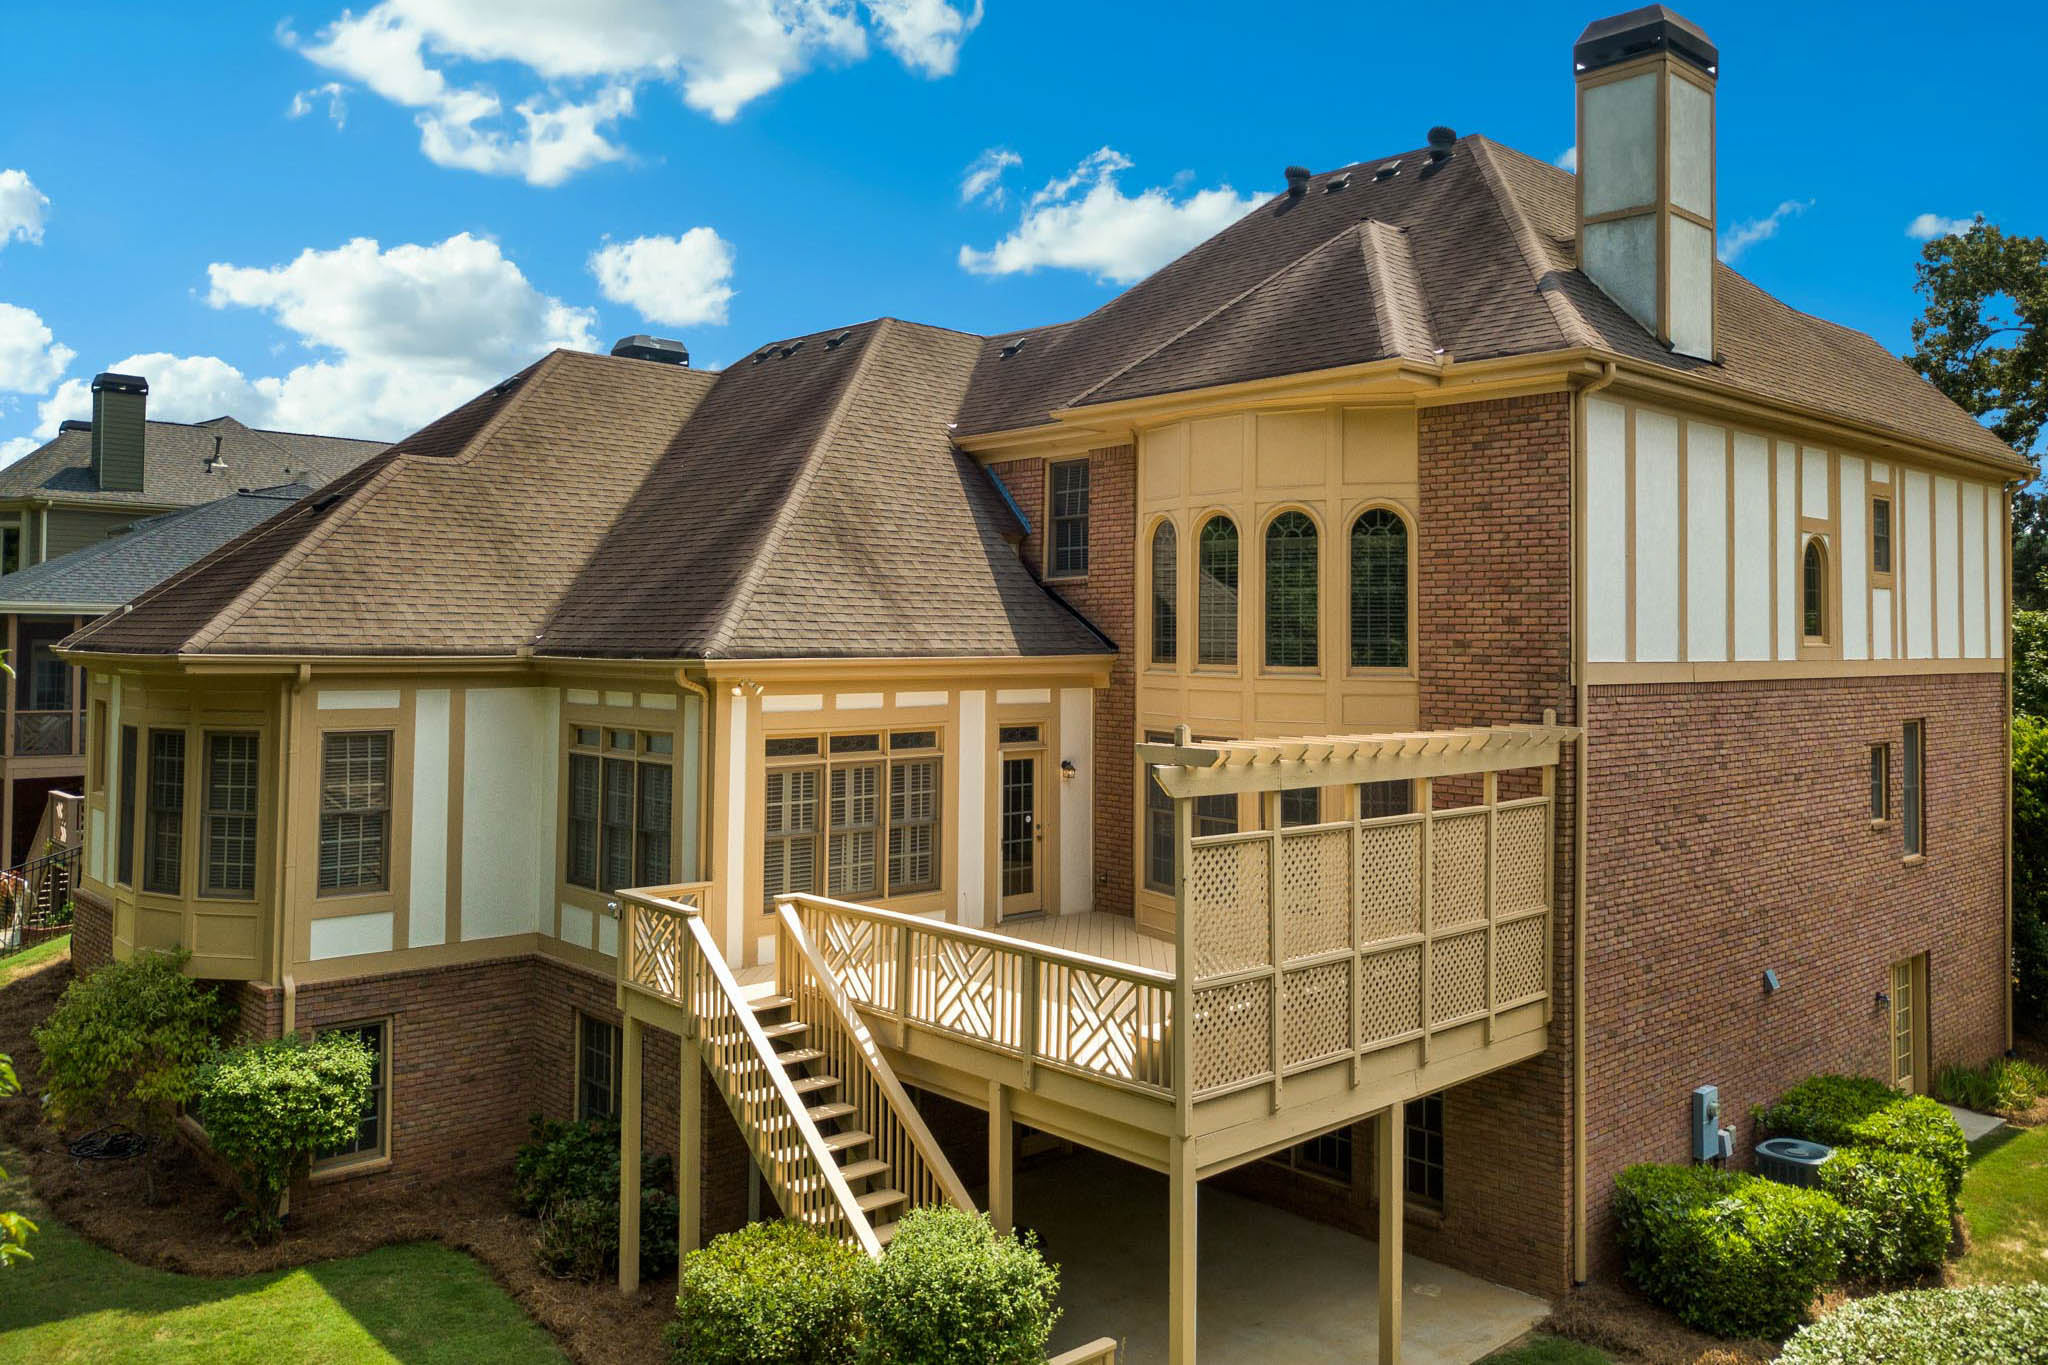 real_estate_photographer_residential_photography-4.jpg